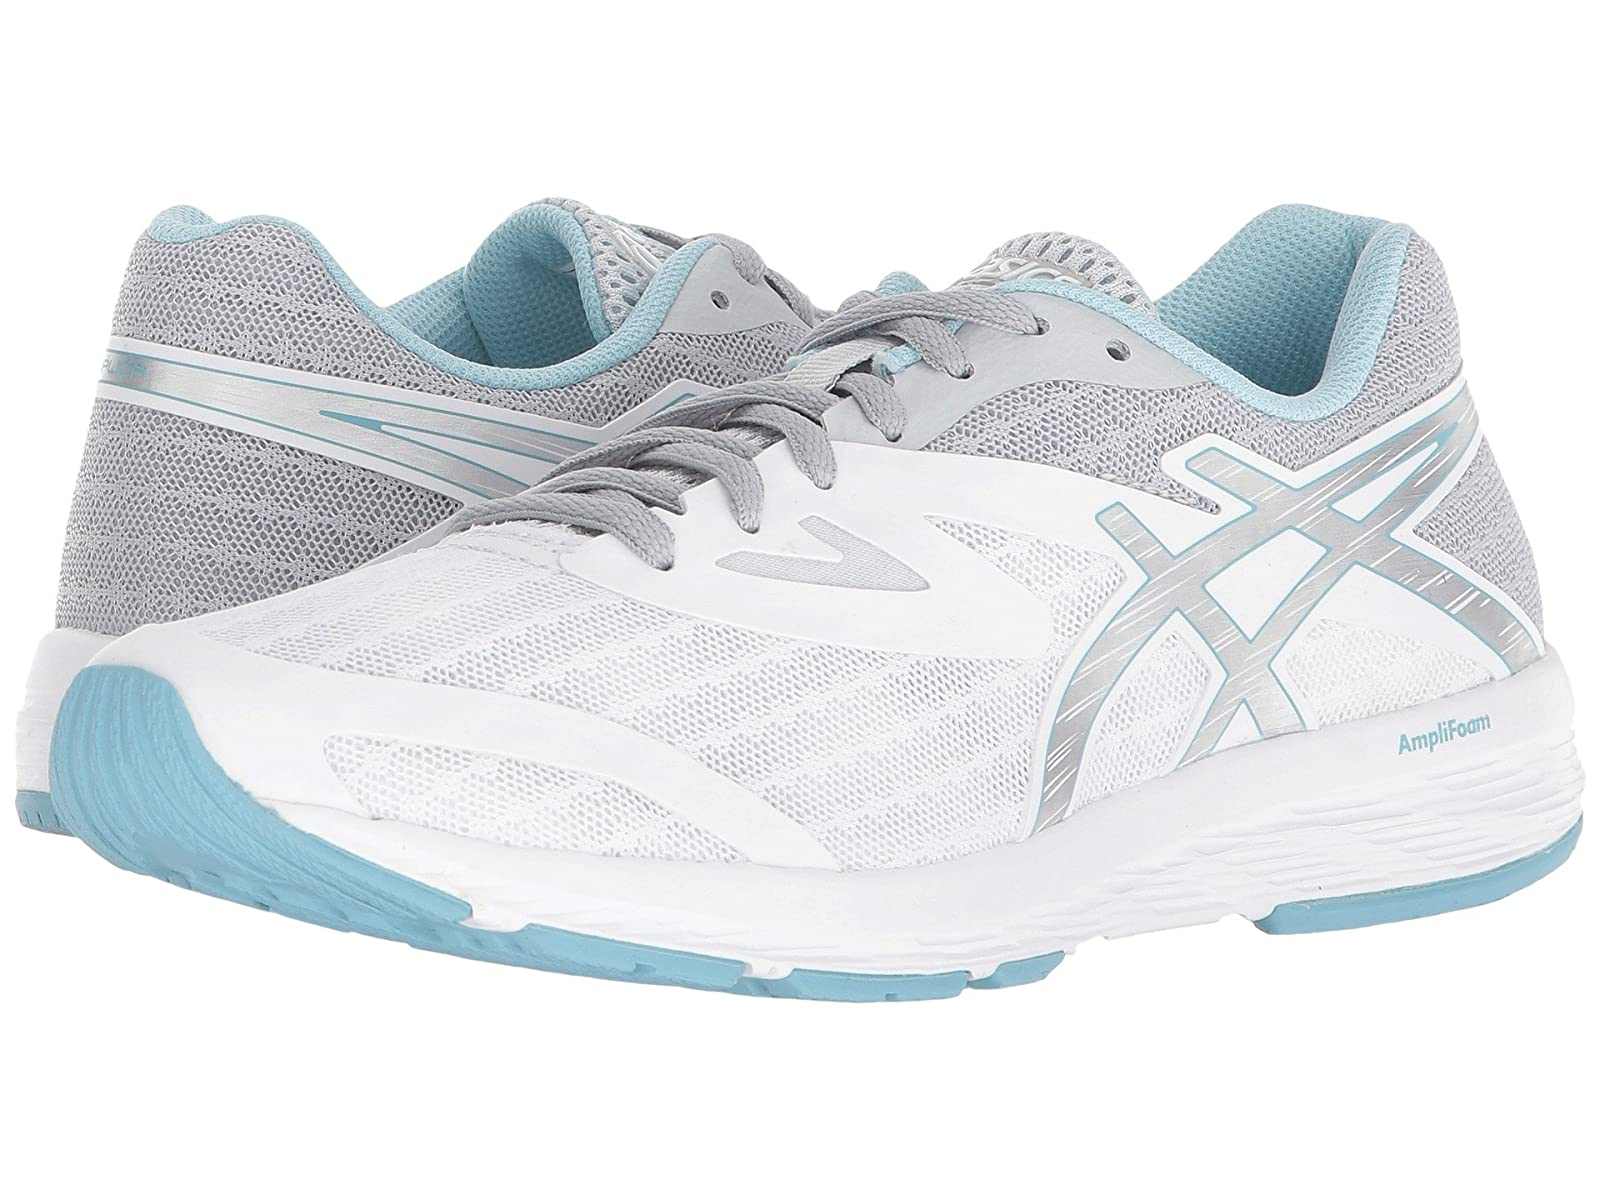 ASICS AmplicaAtmospheric grades have affordable shoes